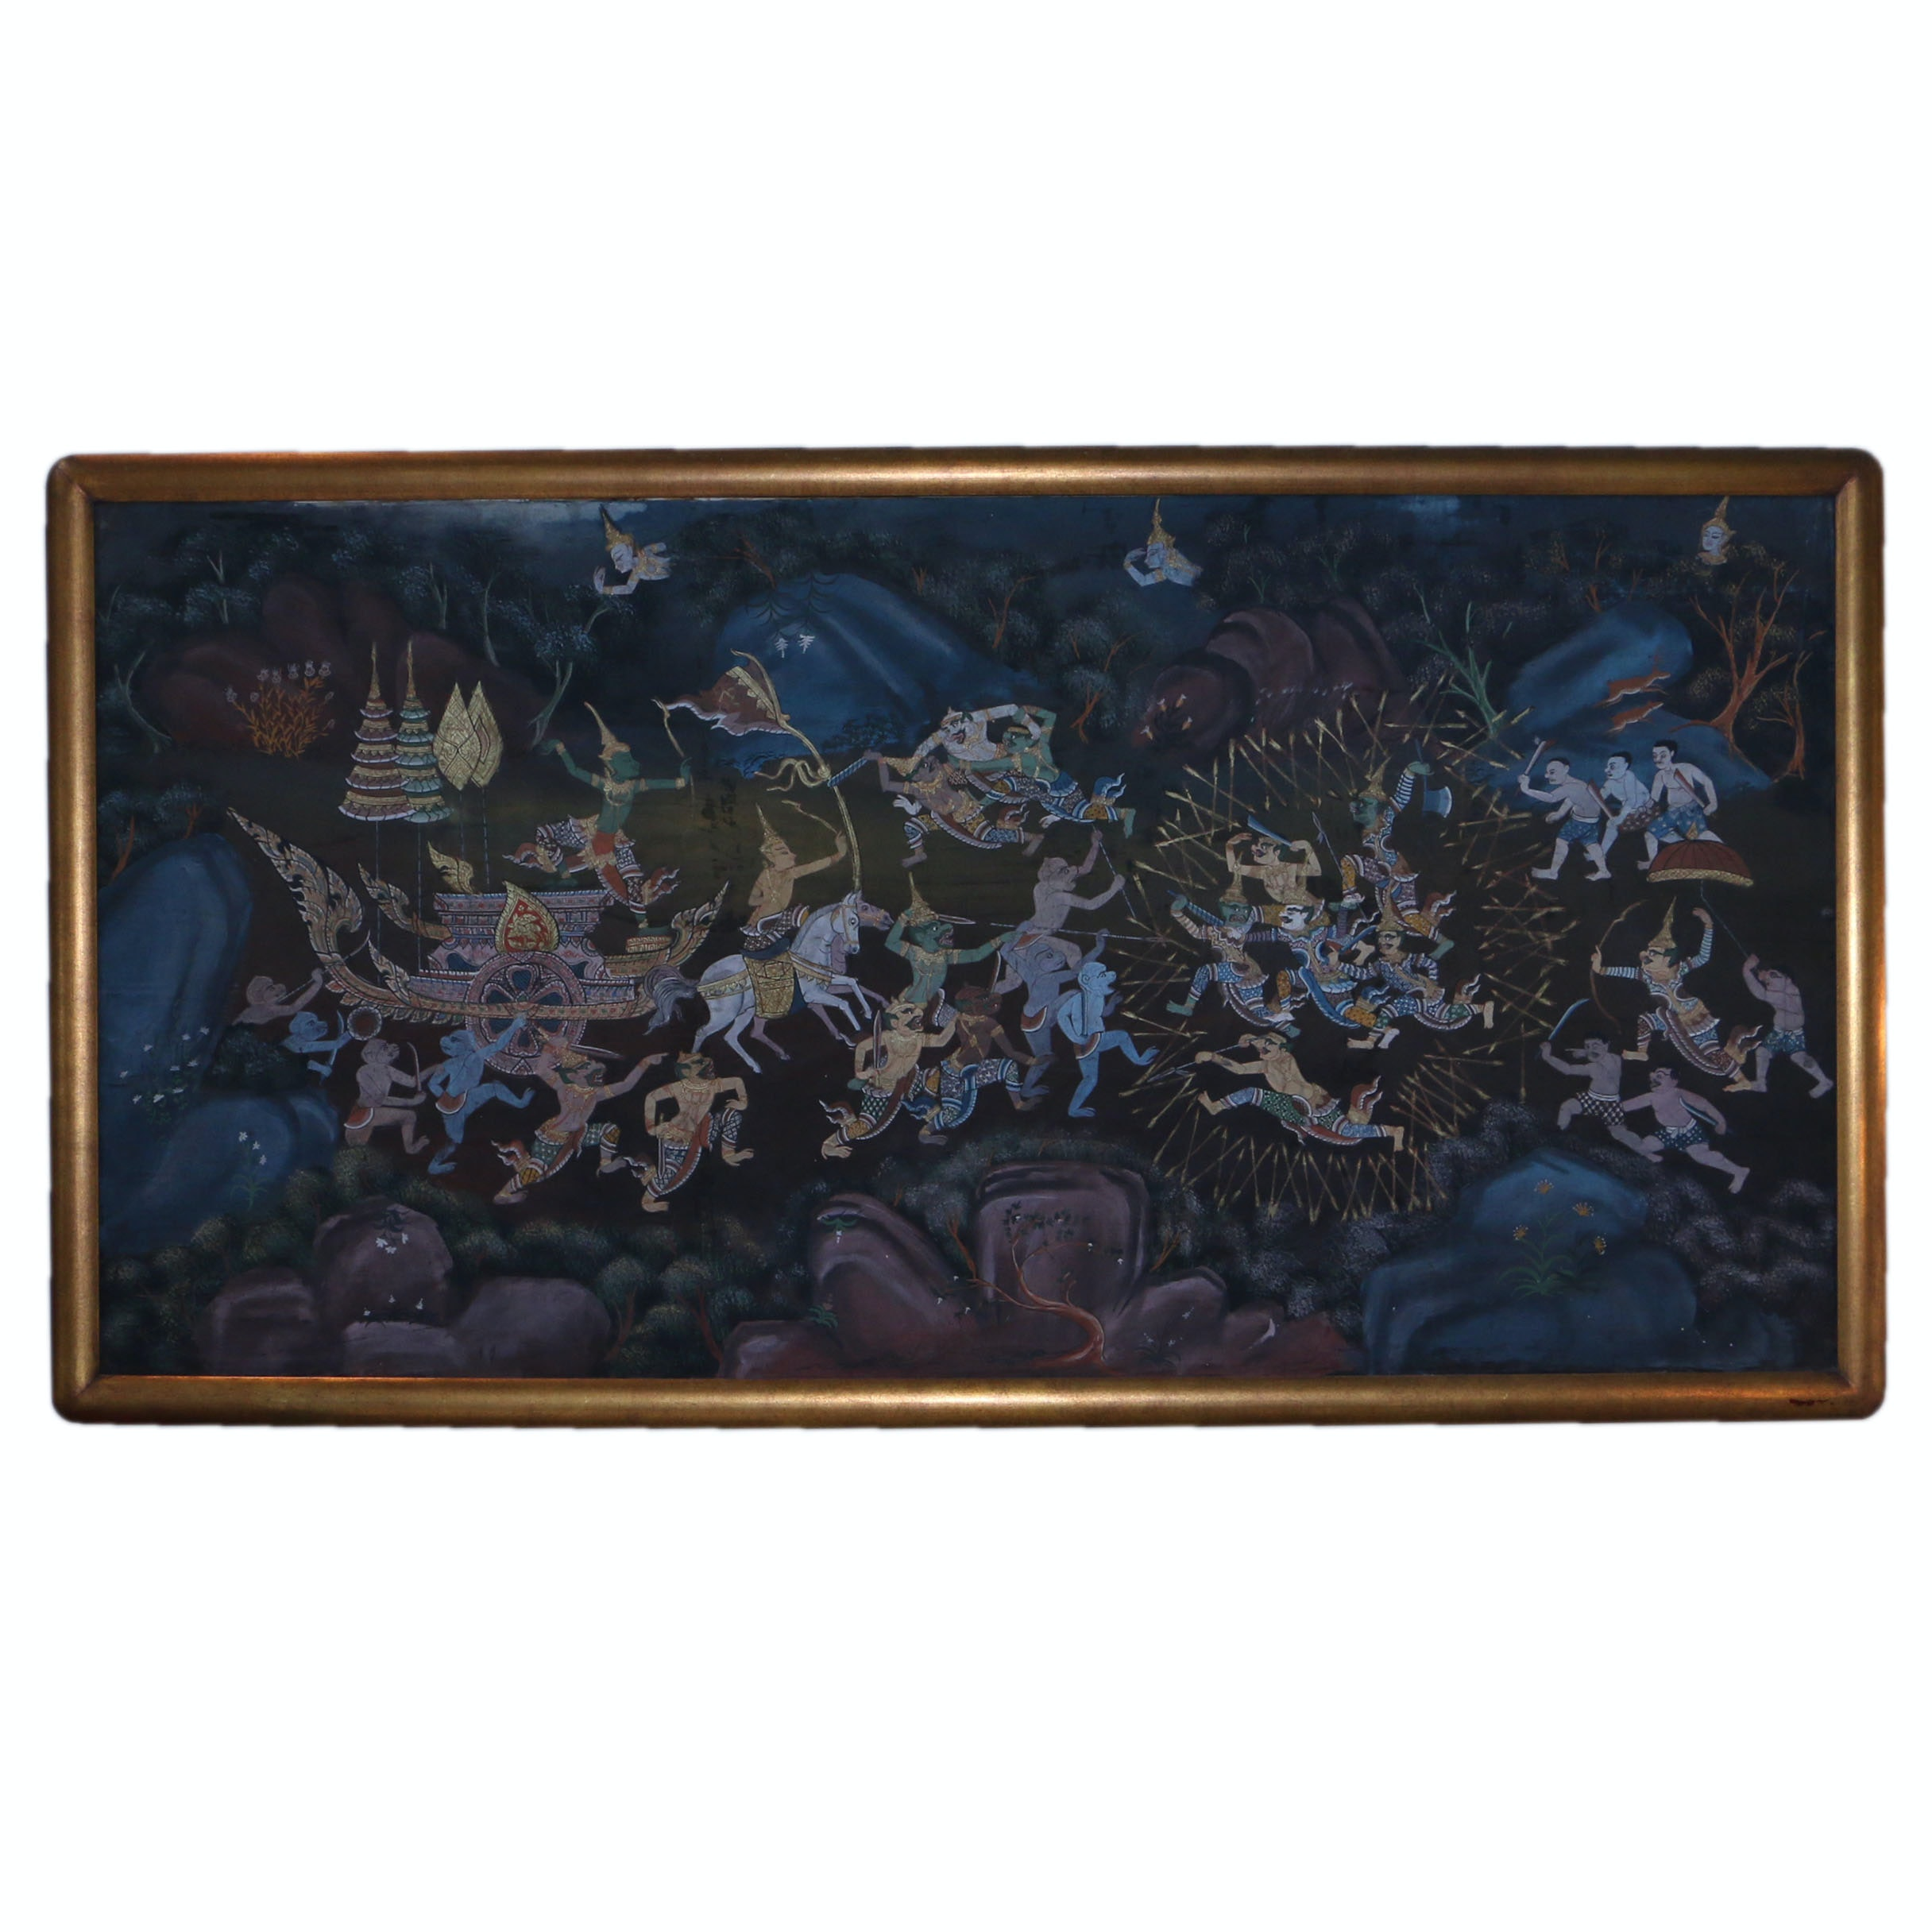 Thai Inspired Mixed Media Painting on Fabric of Battle Scene from Ramakien Epic